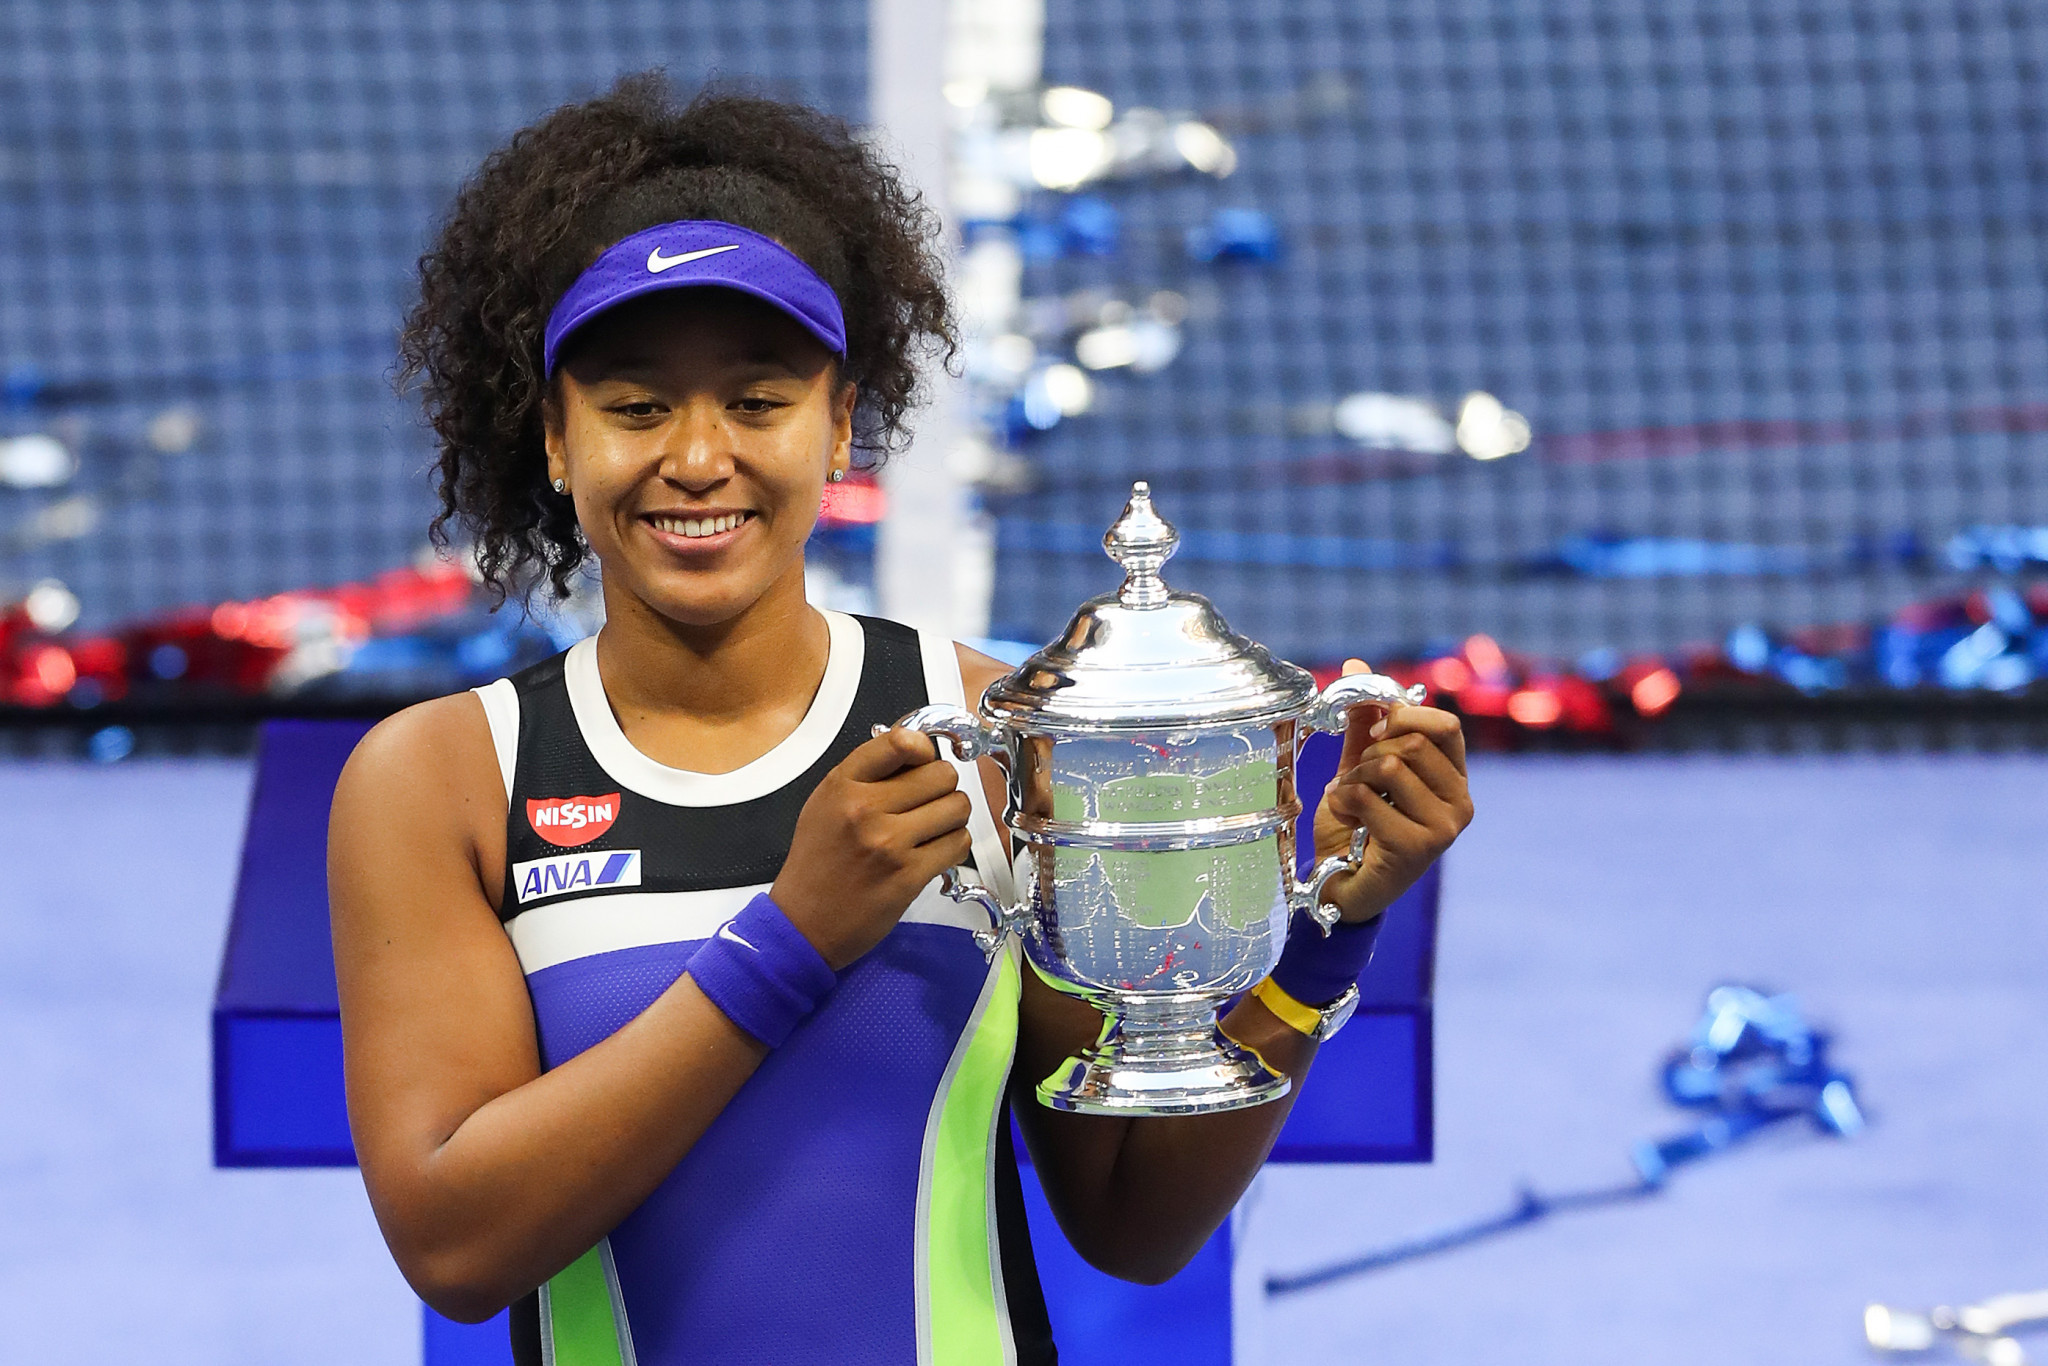 Naomi Osaka has impressed Billie Jean King with her efforts on and off the court ©Getty Images